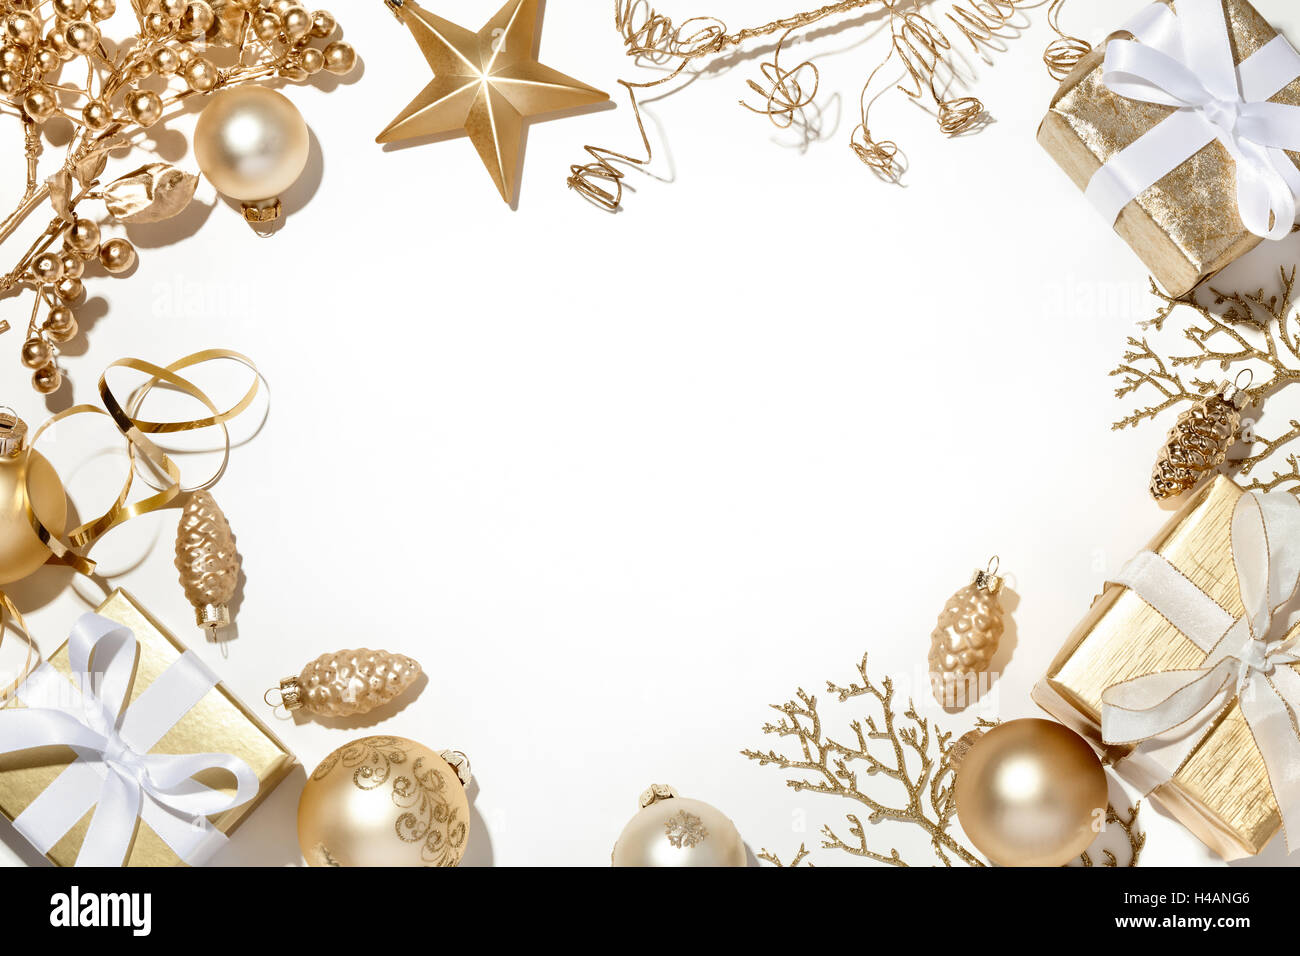 Golden Christmas decorations on white background - Stock Image